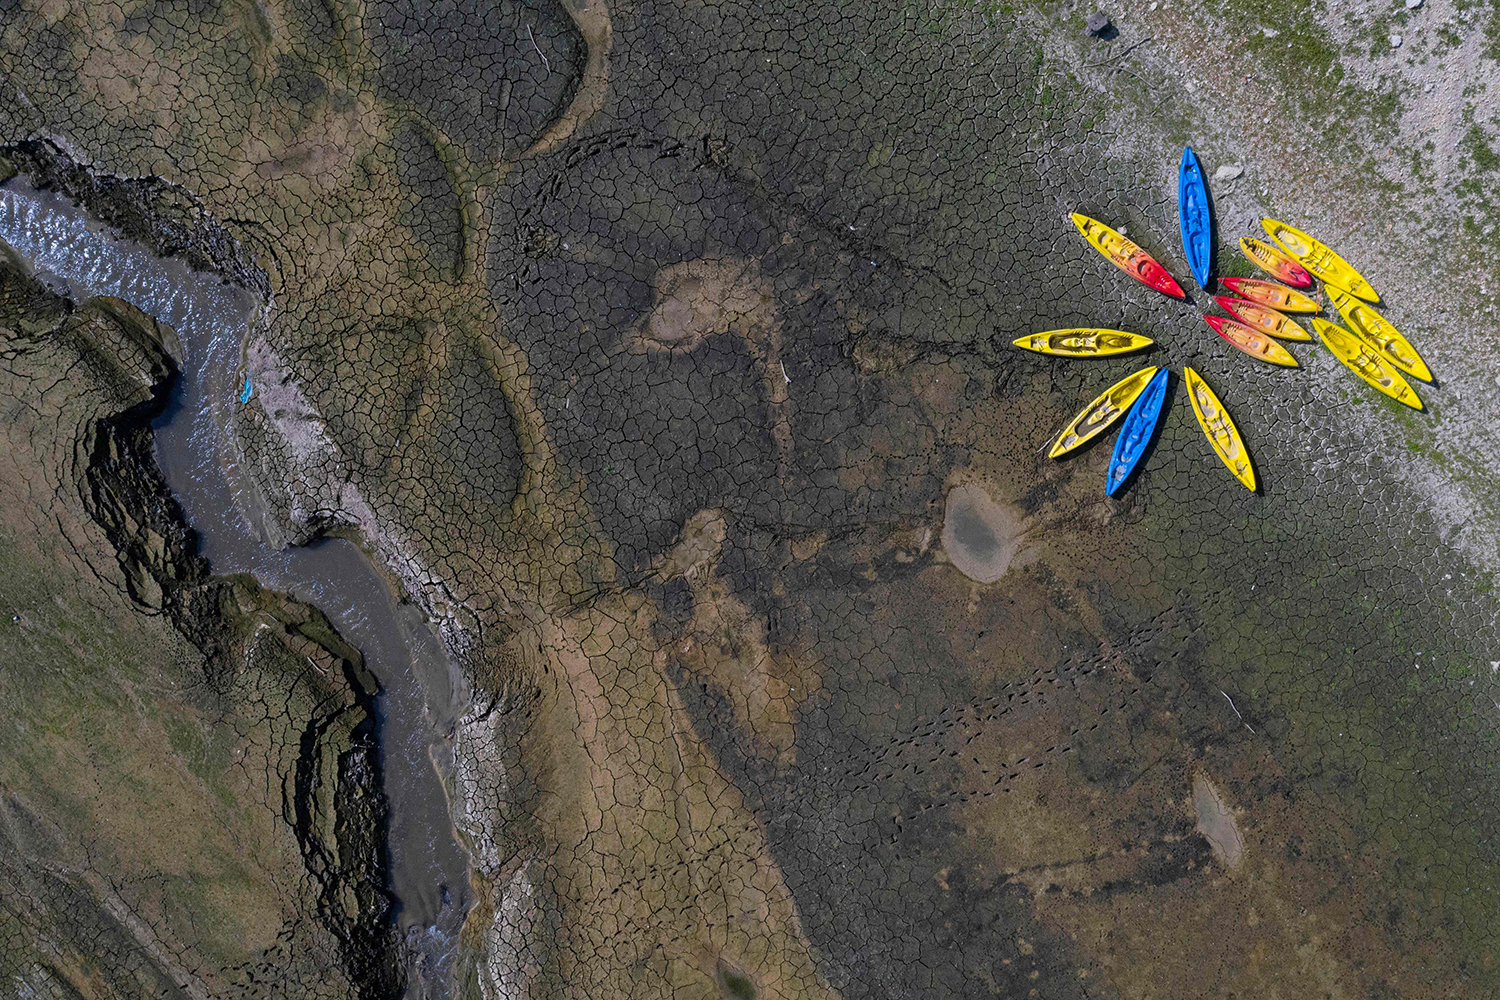 Kayaks sit on cracked earth near the dried-out Doubs river in Villers-le-Lac, eastern France, on Sept. 15. A drought in the region caused the river to be at one of its lowest levels in more than a century. SEBASTIEN BOZON/AFP via Getty Images